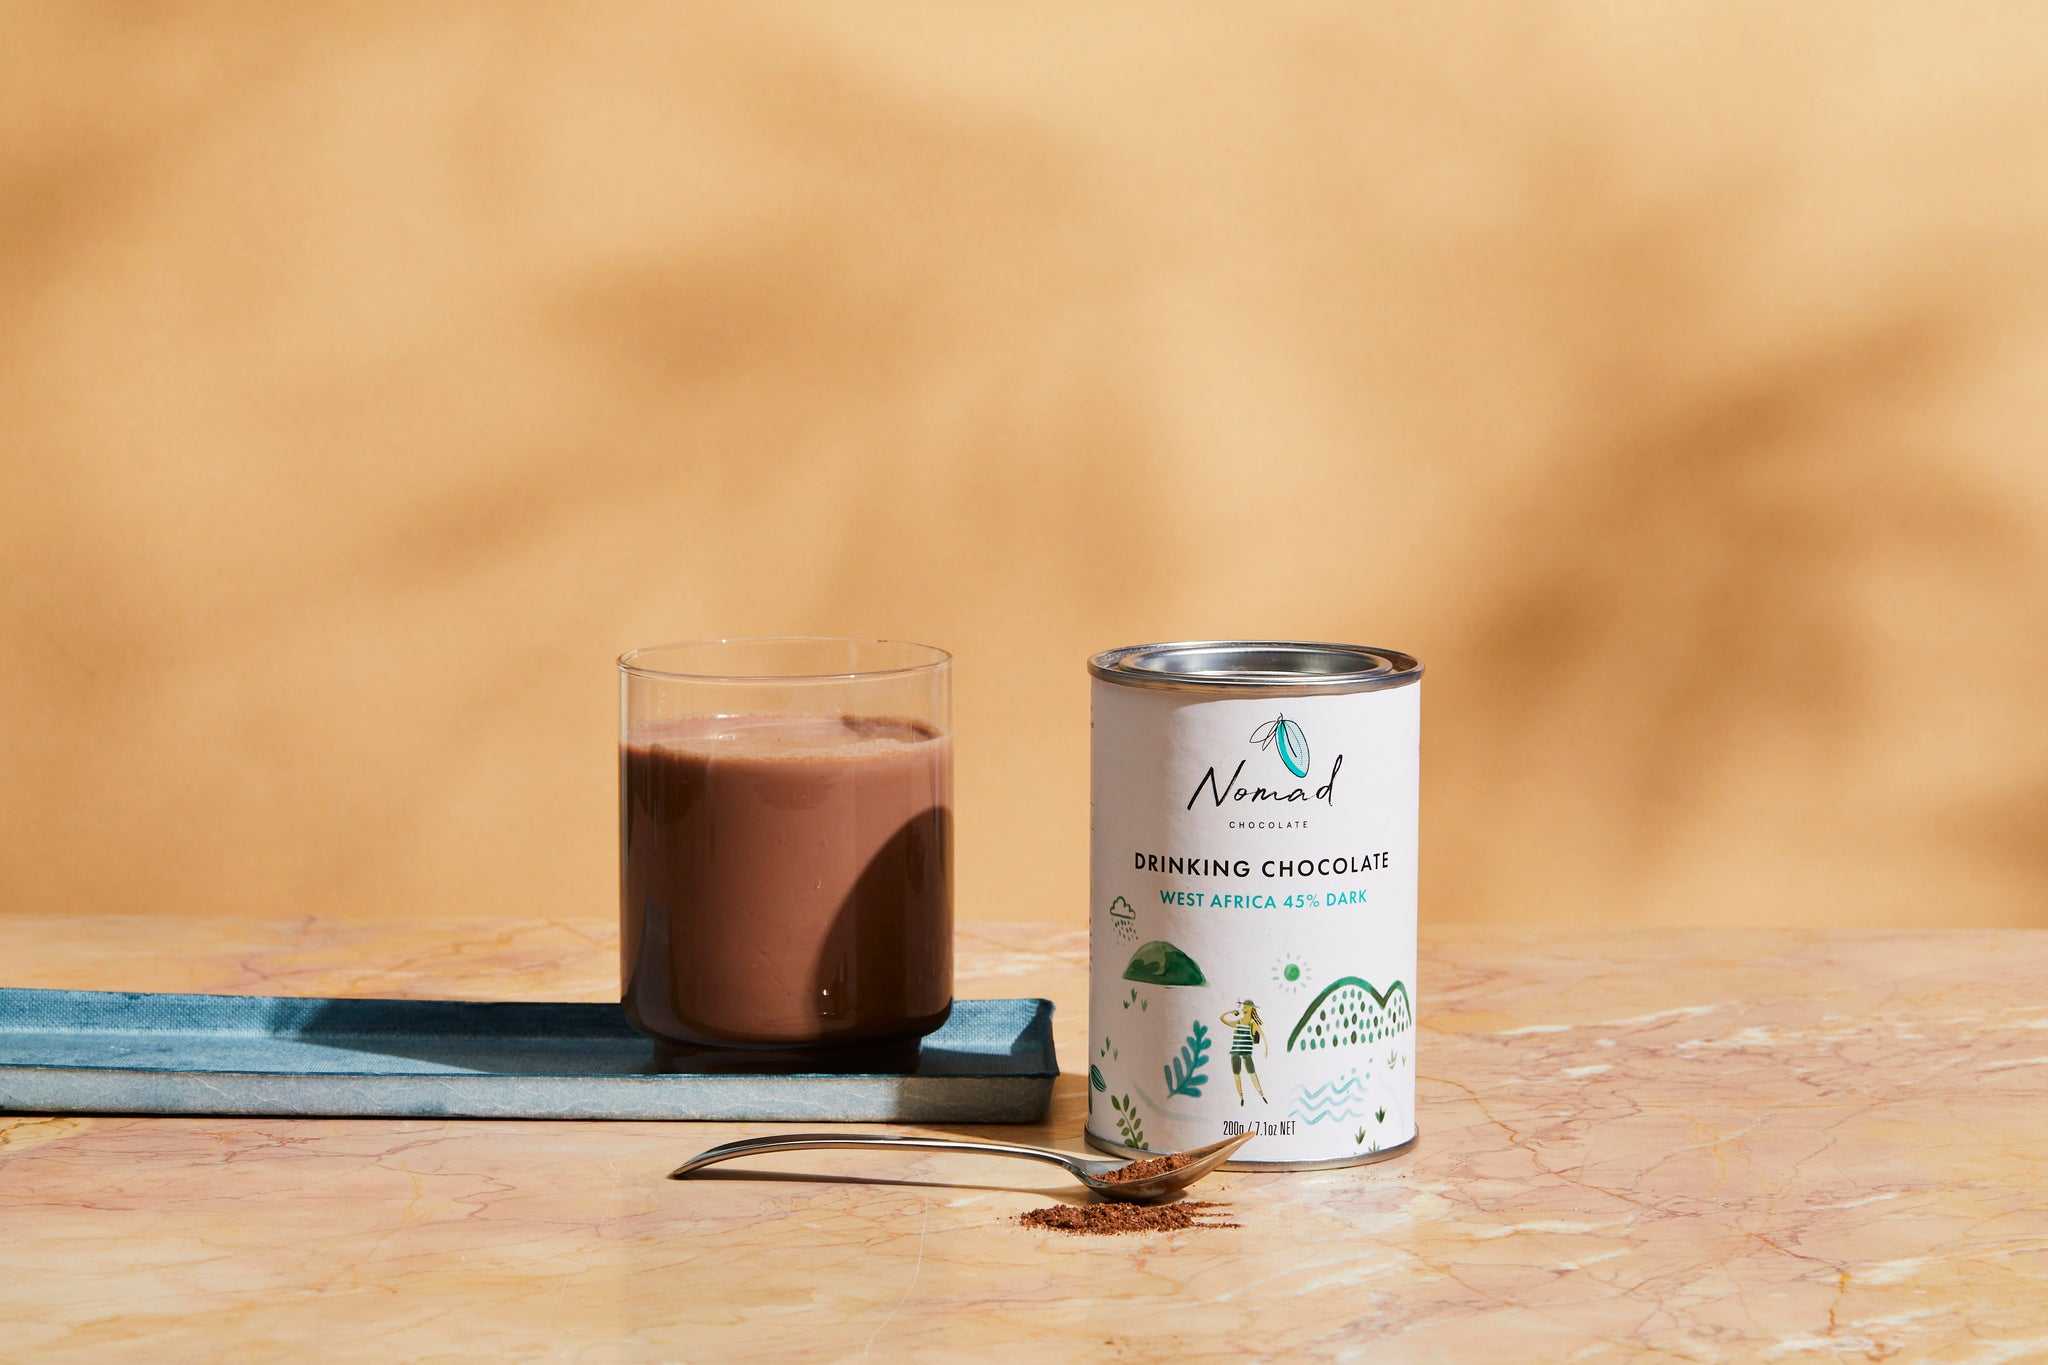 Nomad Chocolate's West Africa 45% Dark Hot Chocolate is Now Available at Woolworths